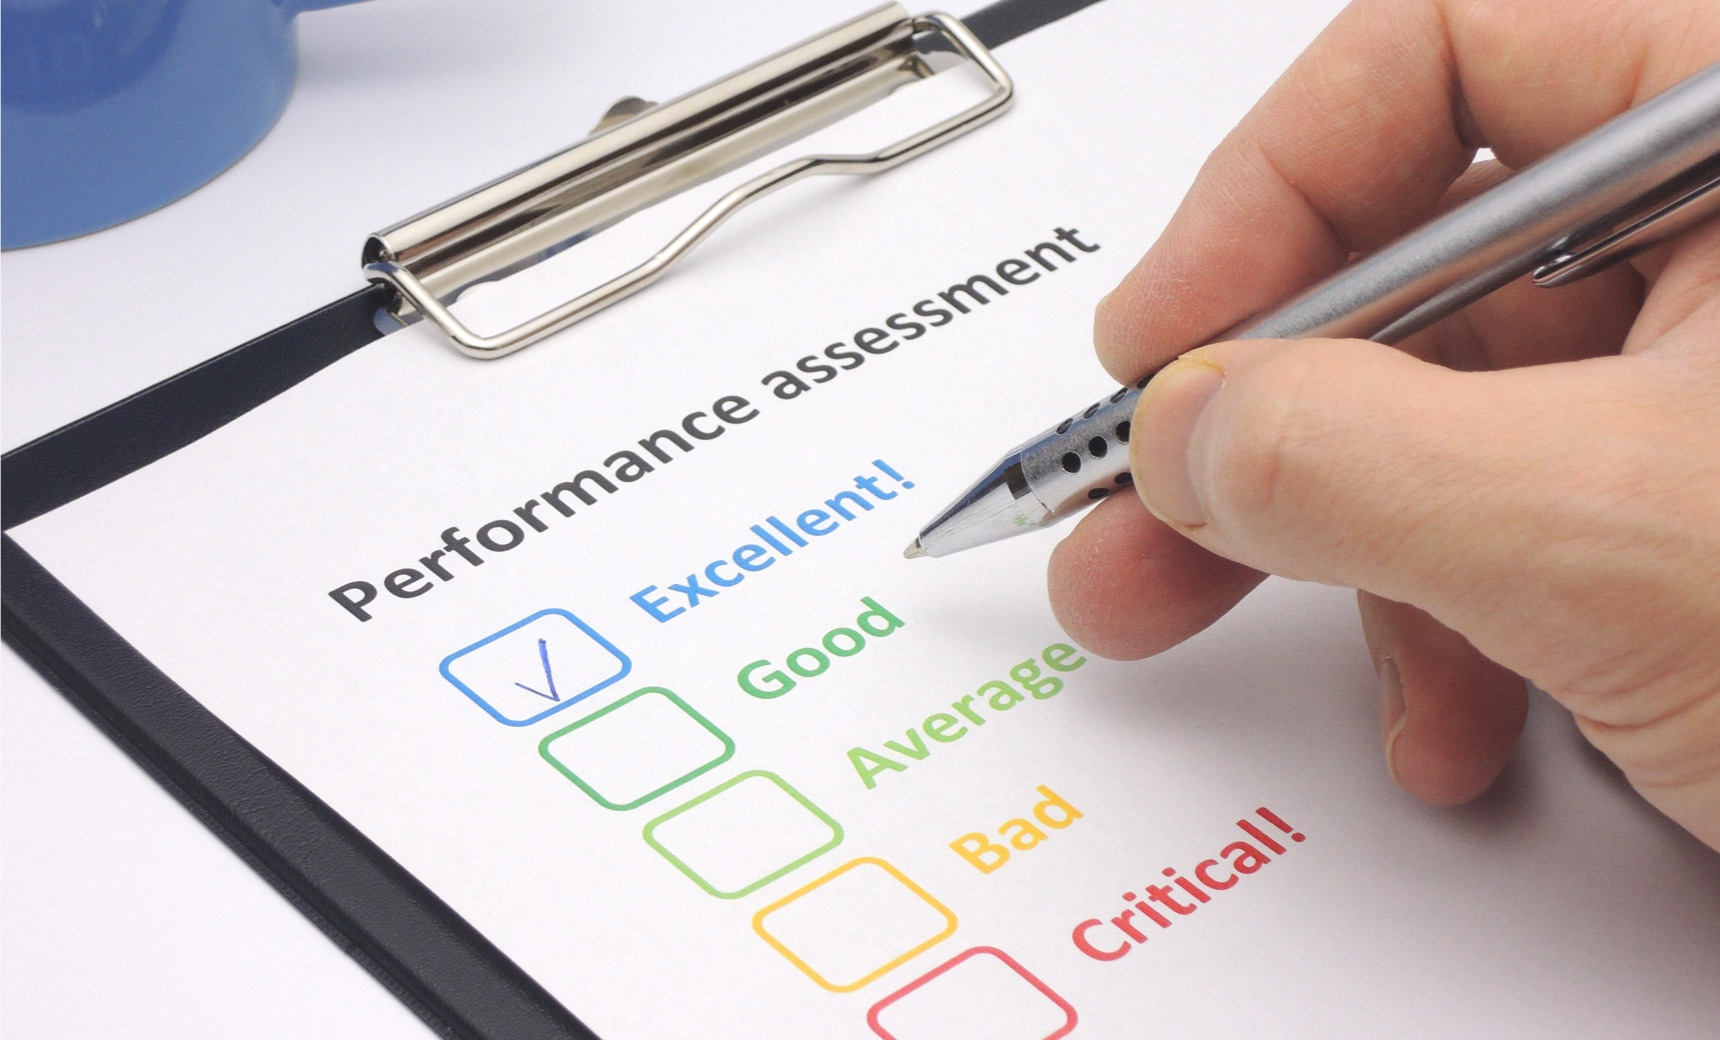 sustainability - Supplier Sustainability - supplier assessment - Supplier performance assessment